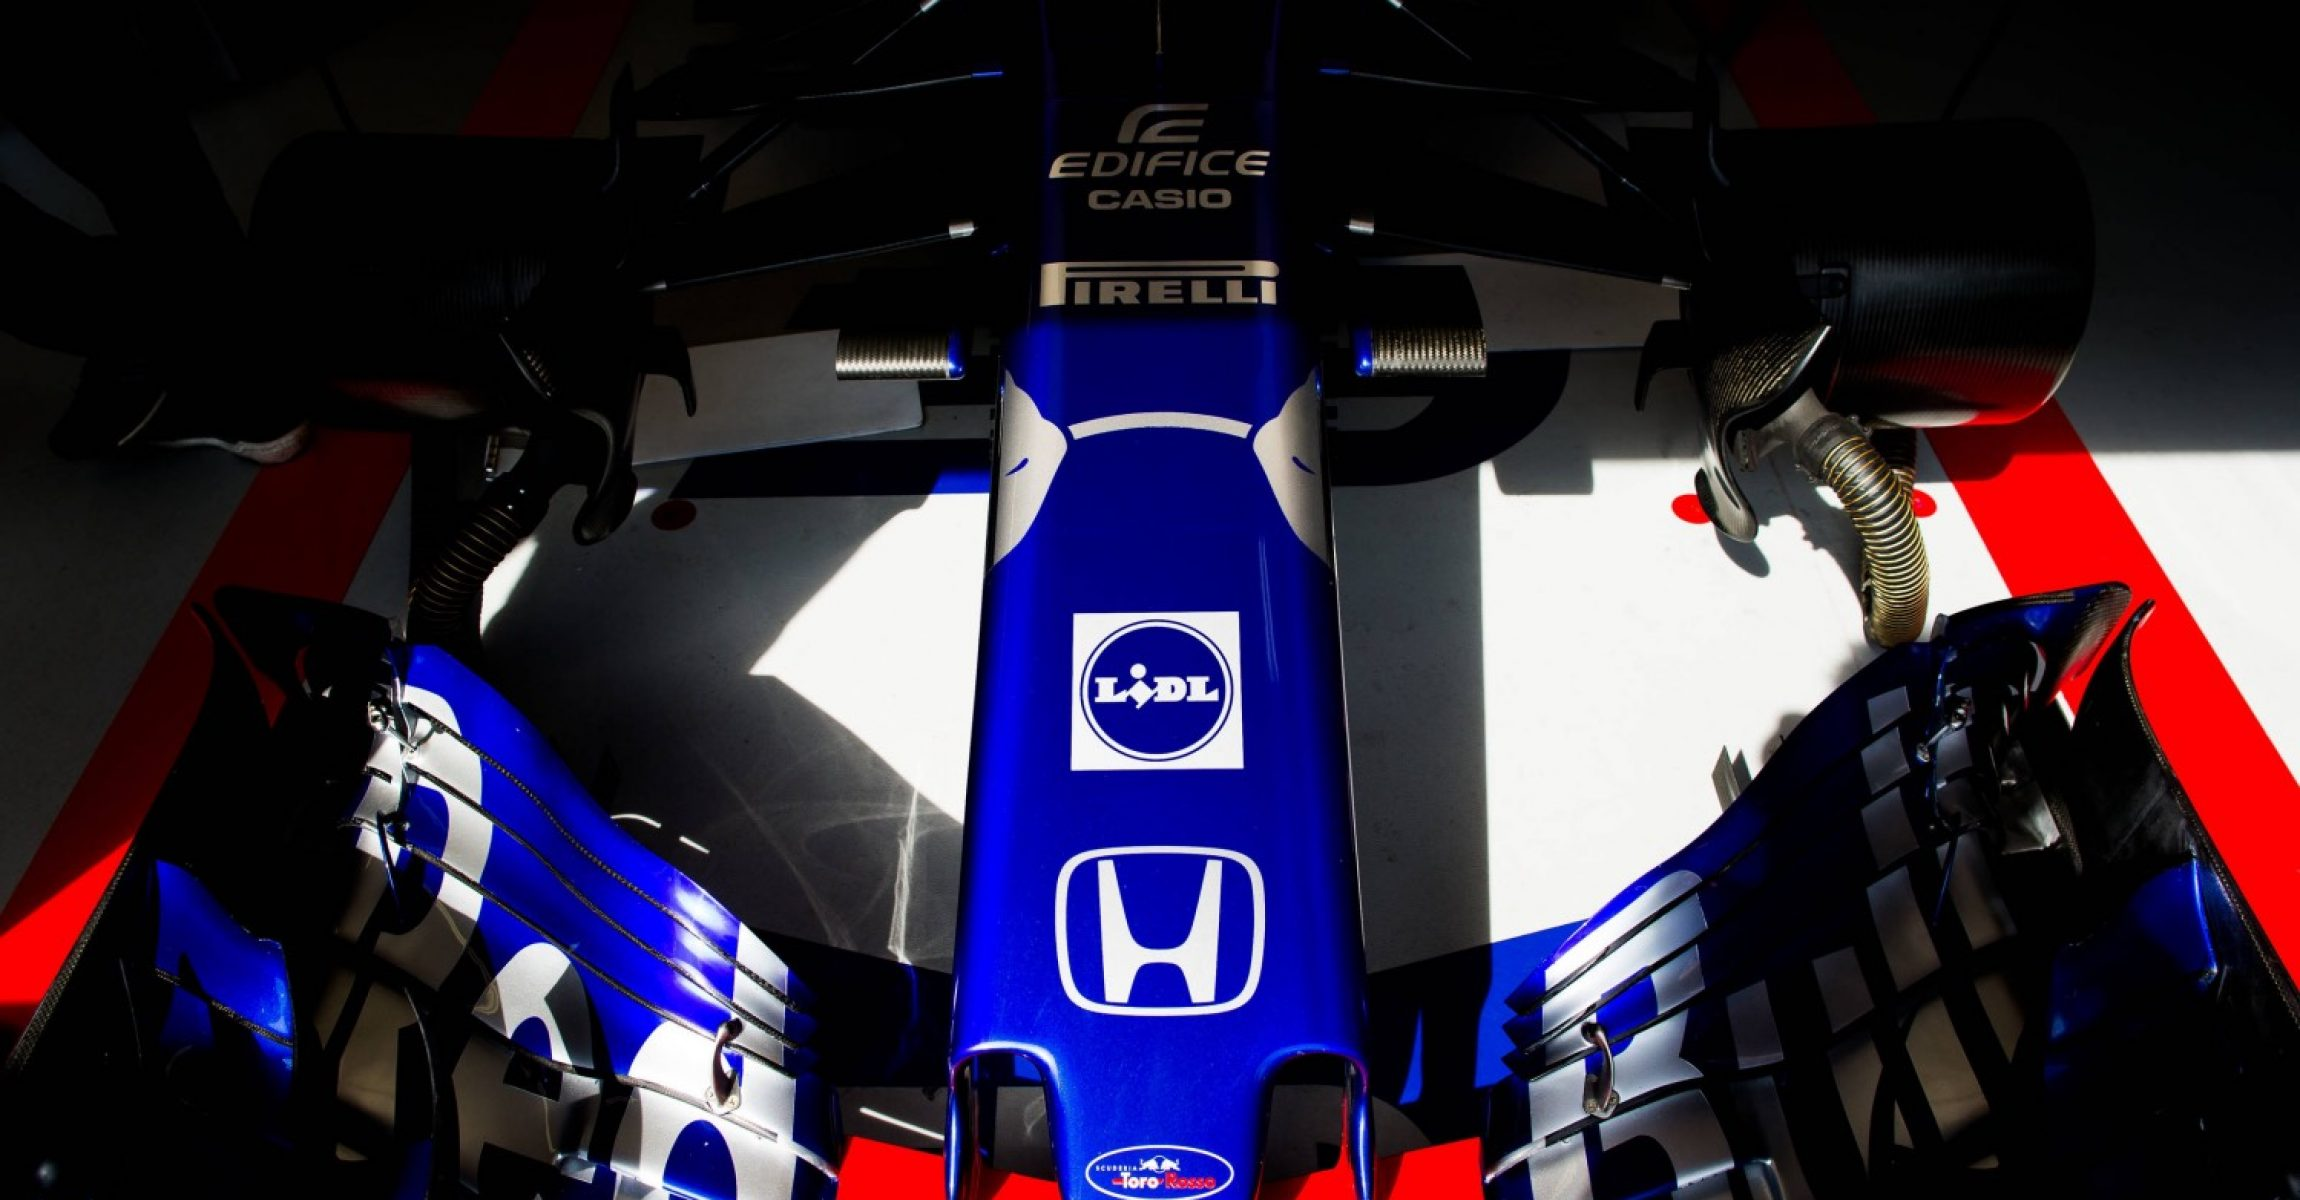 MONTE-CARLO, MONACO - MAY 24:  24:  24:  24:  24:  24:  24:  24:  24:  Brendon Hartley of Scuderia Toro Rosso and New Zealand during practice for the Monaco Formula One Grand Prix at Circuit de Monaco on May 24, 2018 in Monte-Carlo, Monaco.  (Photo by Peter Fox/Getty Images) // Getty Images / Red Bull Content Pool  // AP-1VRUVFQQ11W11 // Usage for editorial use only // Please go to www.redbullcontentpool.com for further information. // Honda Logo, Lidl logo nose front wing